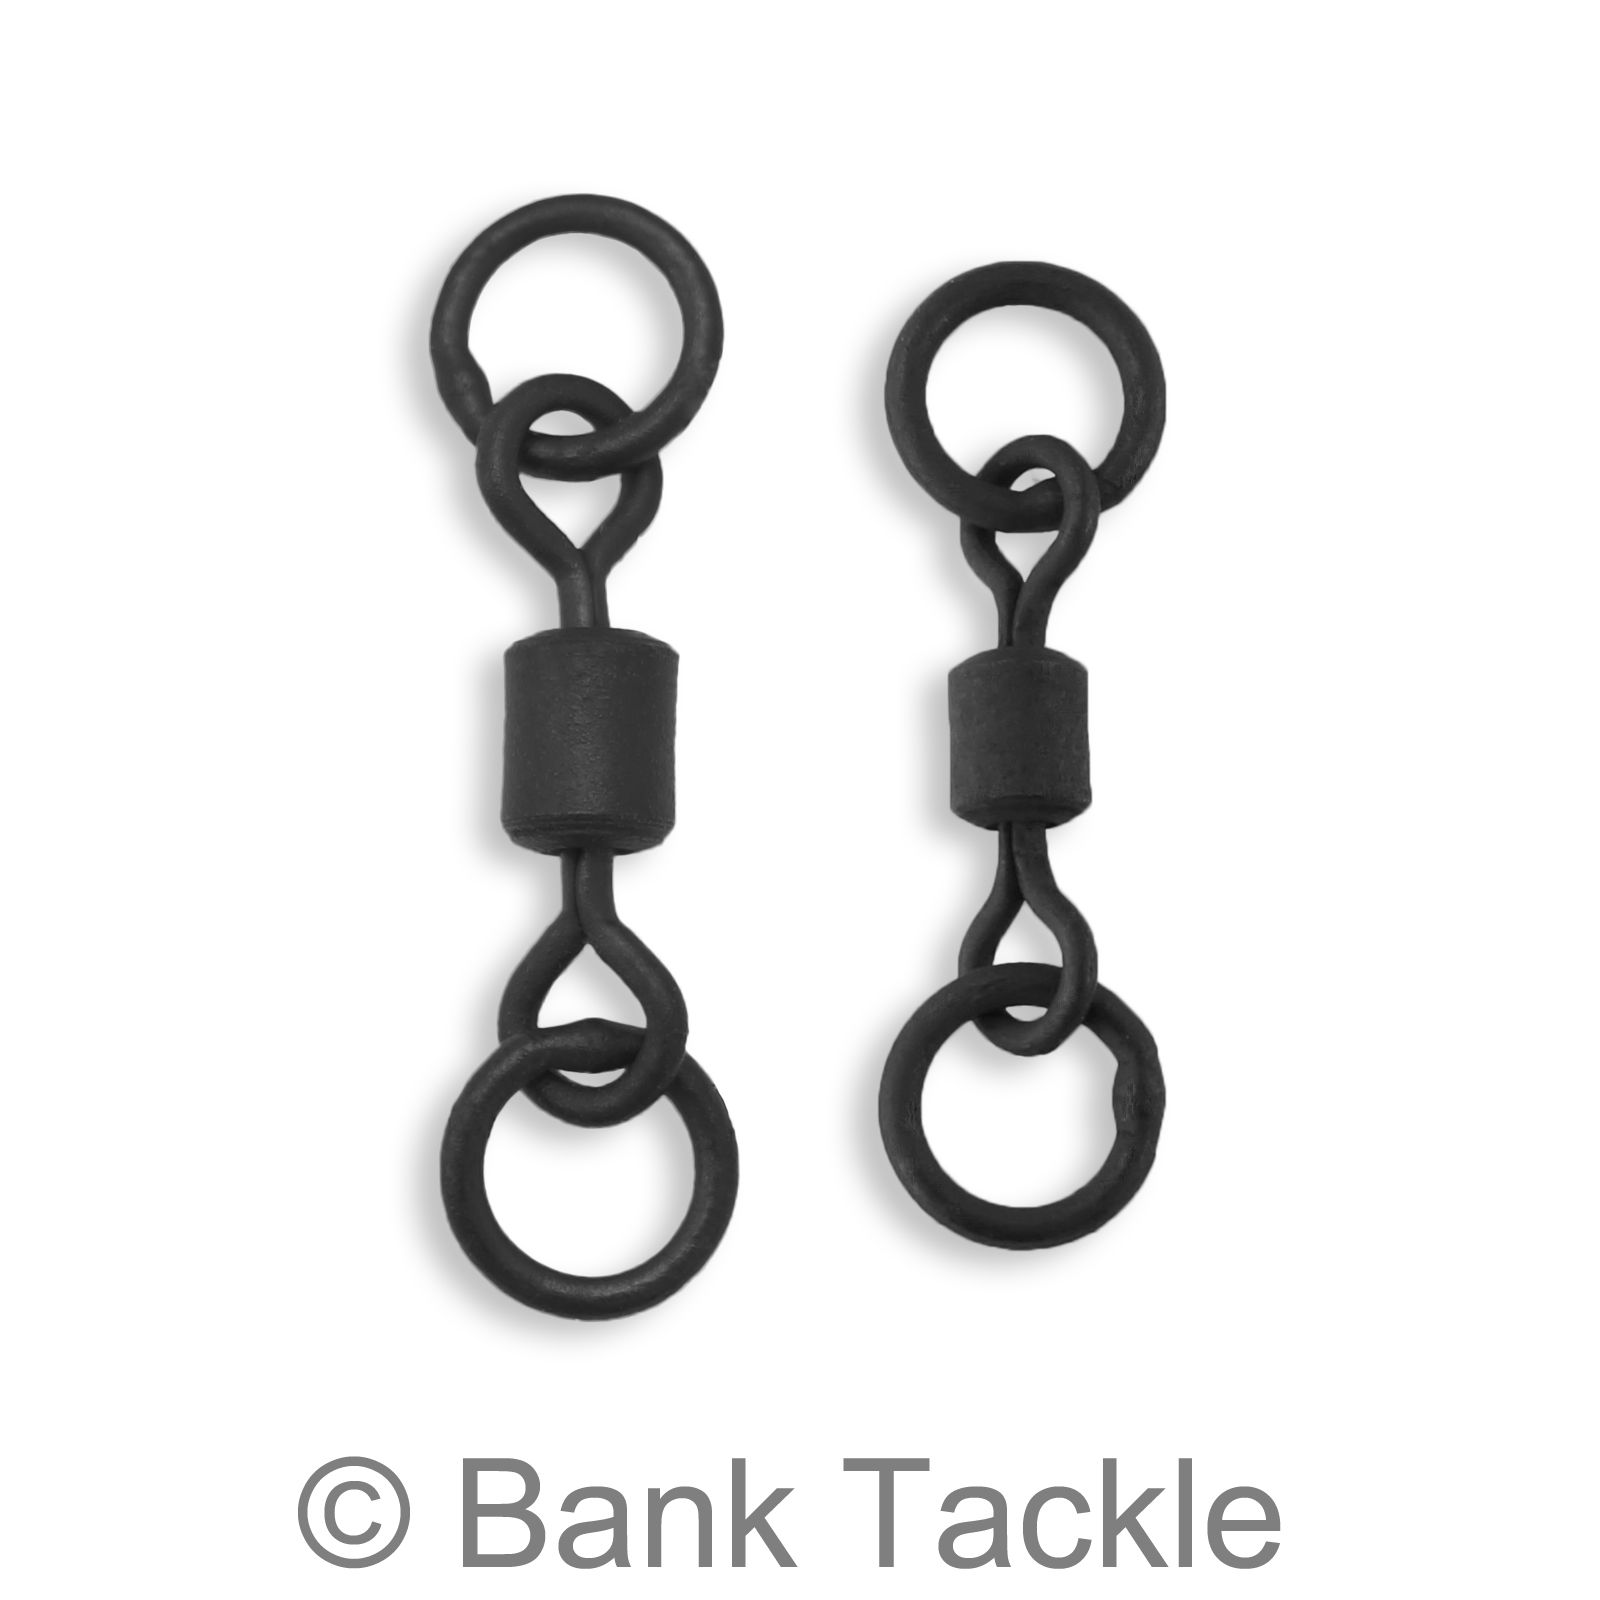 SD Double Ring Chod Swivels Size 11 Carp Fishing Terminal Tackle Make Rigs